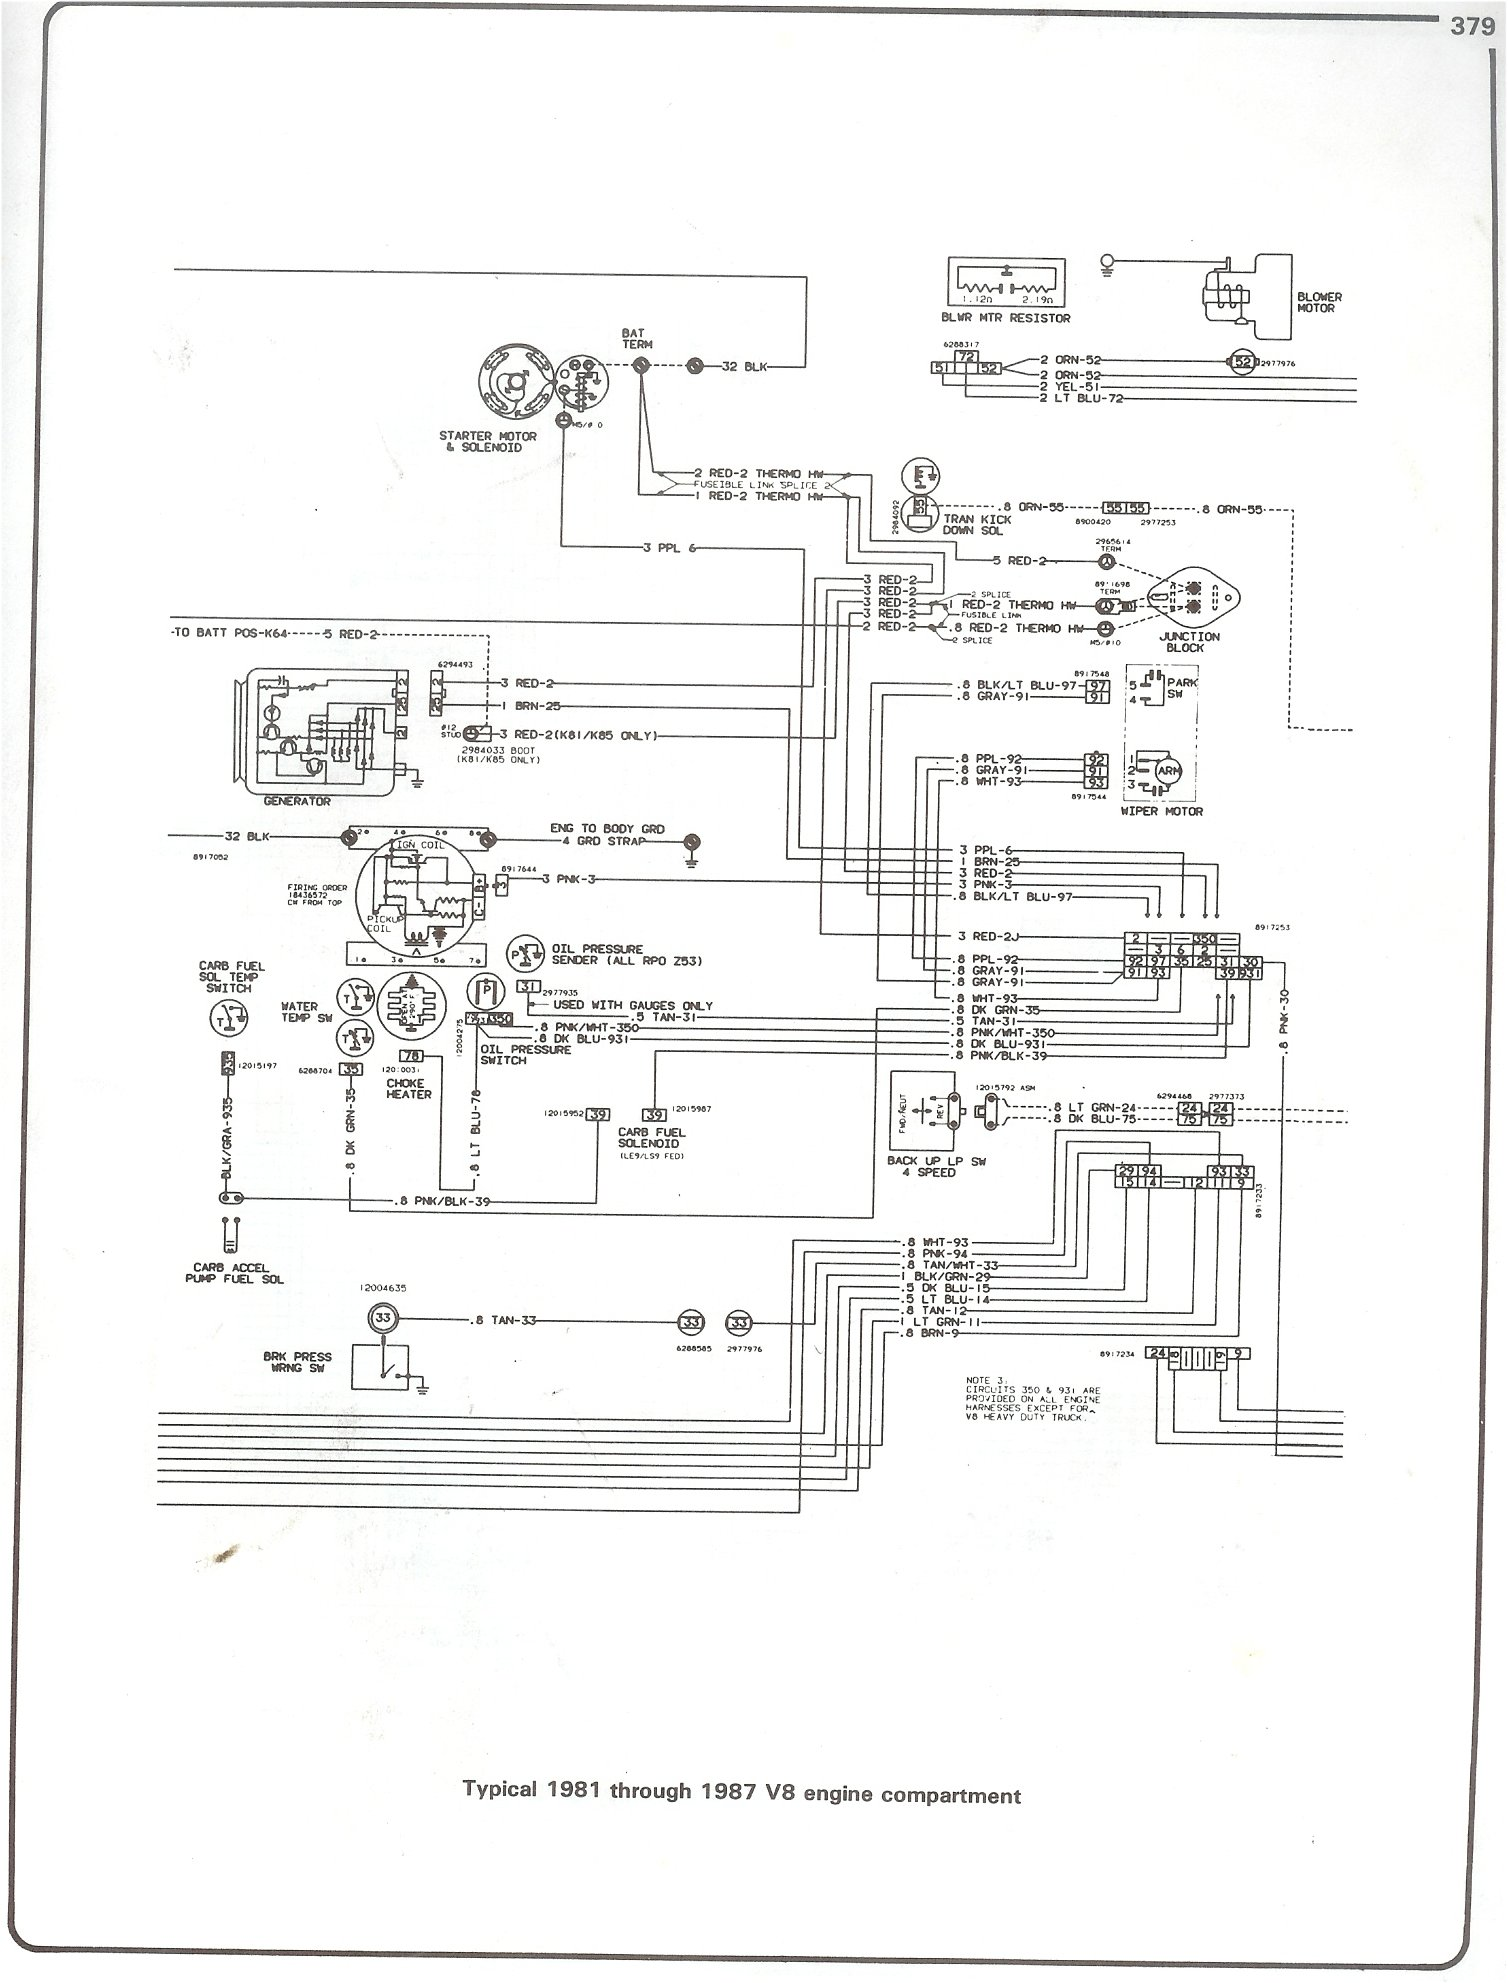 1981 k20 fuse block diagram detailed schematics diagram rh jvpacks com 76  Chevy Blazer Mud Bog